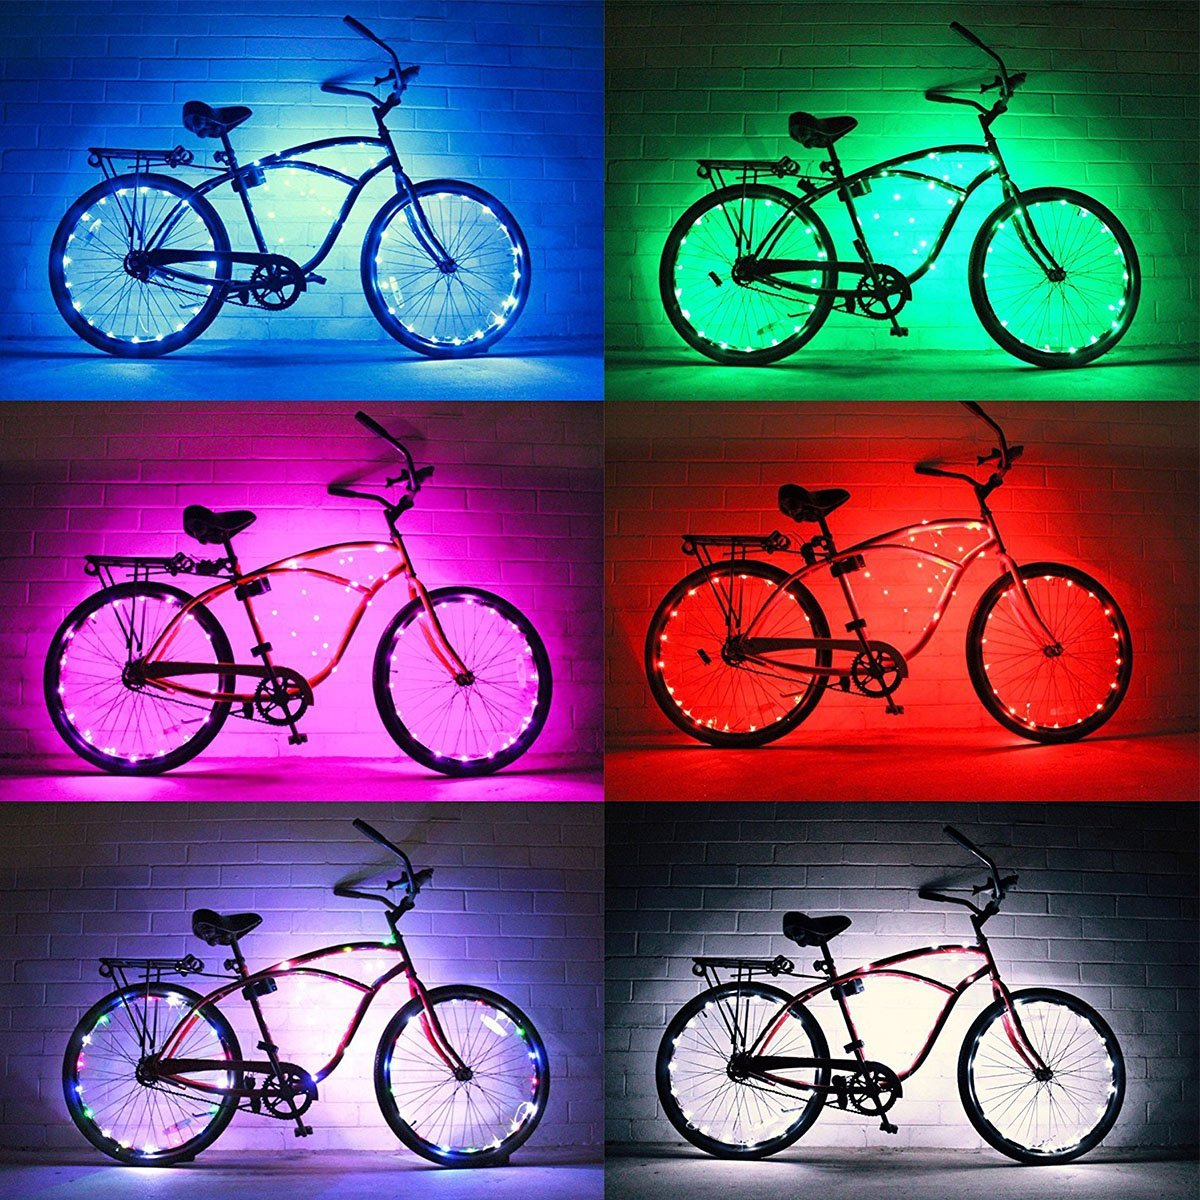 DIMY Bike Wheel Lights, LED Bike Wheel Light for Boys Toys for 5-16 Year Old Boys 5-14 Year Old Boy Gifts for Teen Girl Outdoor Toys Multicolor TTB07 by DIMY (Image #8)